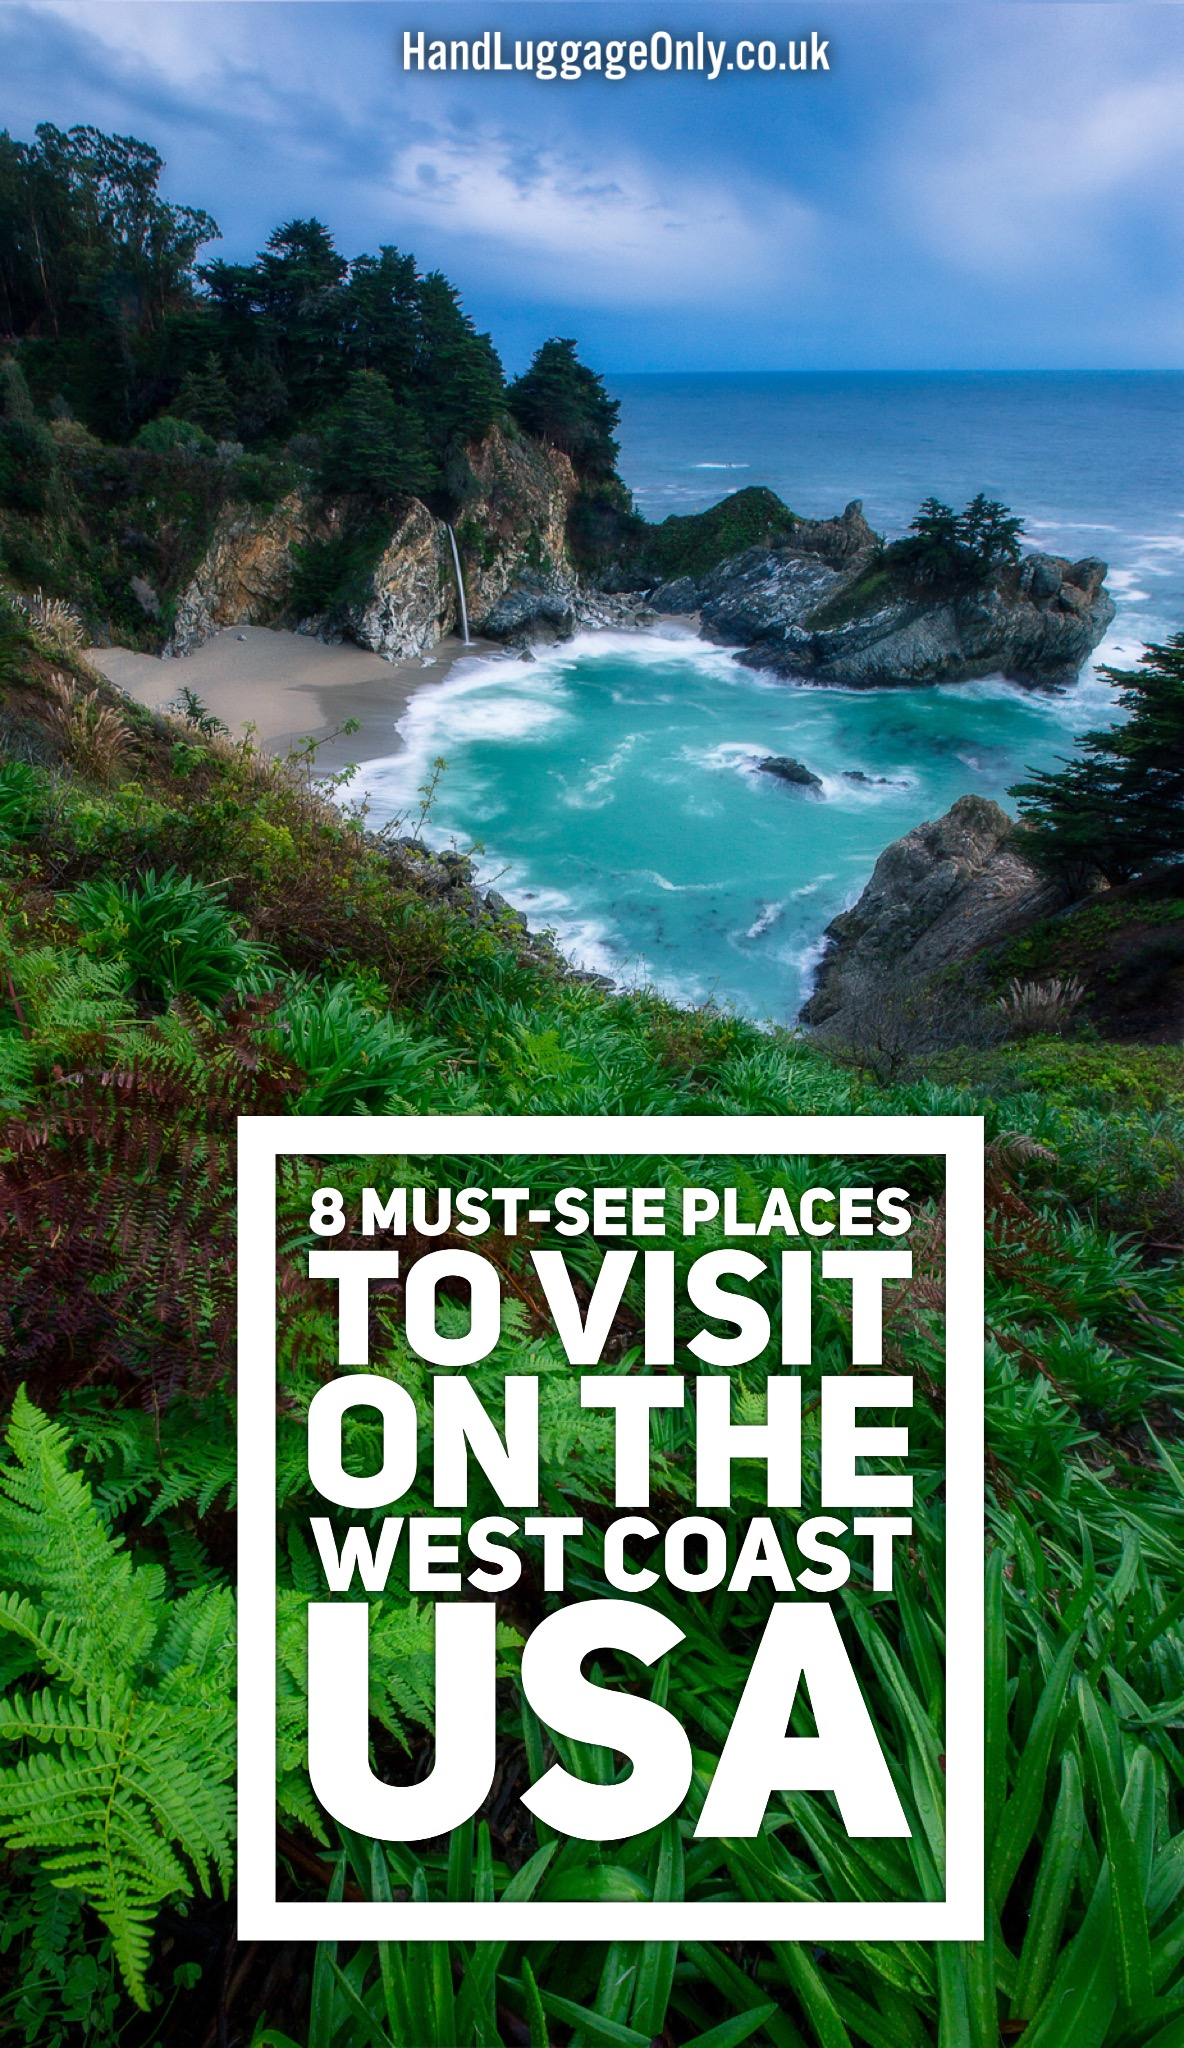 8 Must See Places To Visit On The West Coast of America  Hand Luggage Only  Travel Food